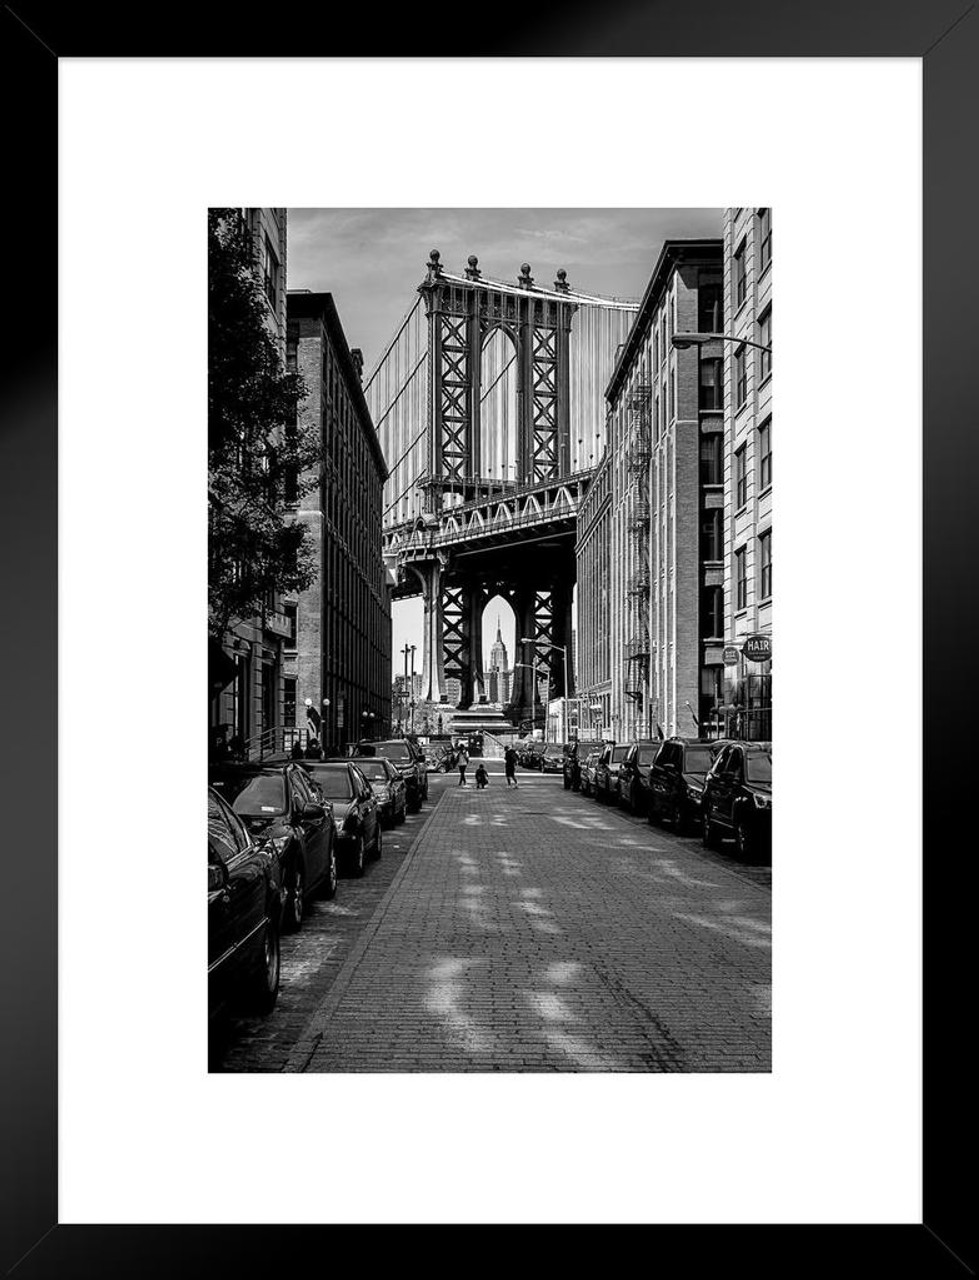 The manhattan bridge from dumbo brooklyn black and white bw photo art print matted framed wall art 20x26 inch